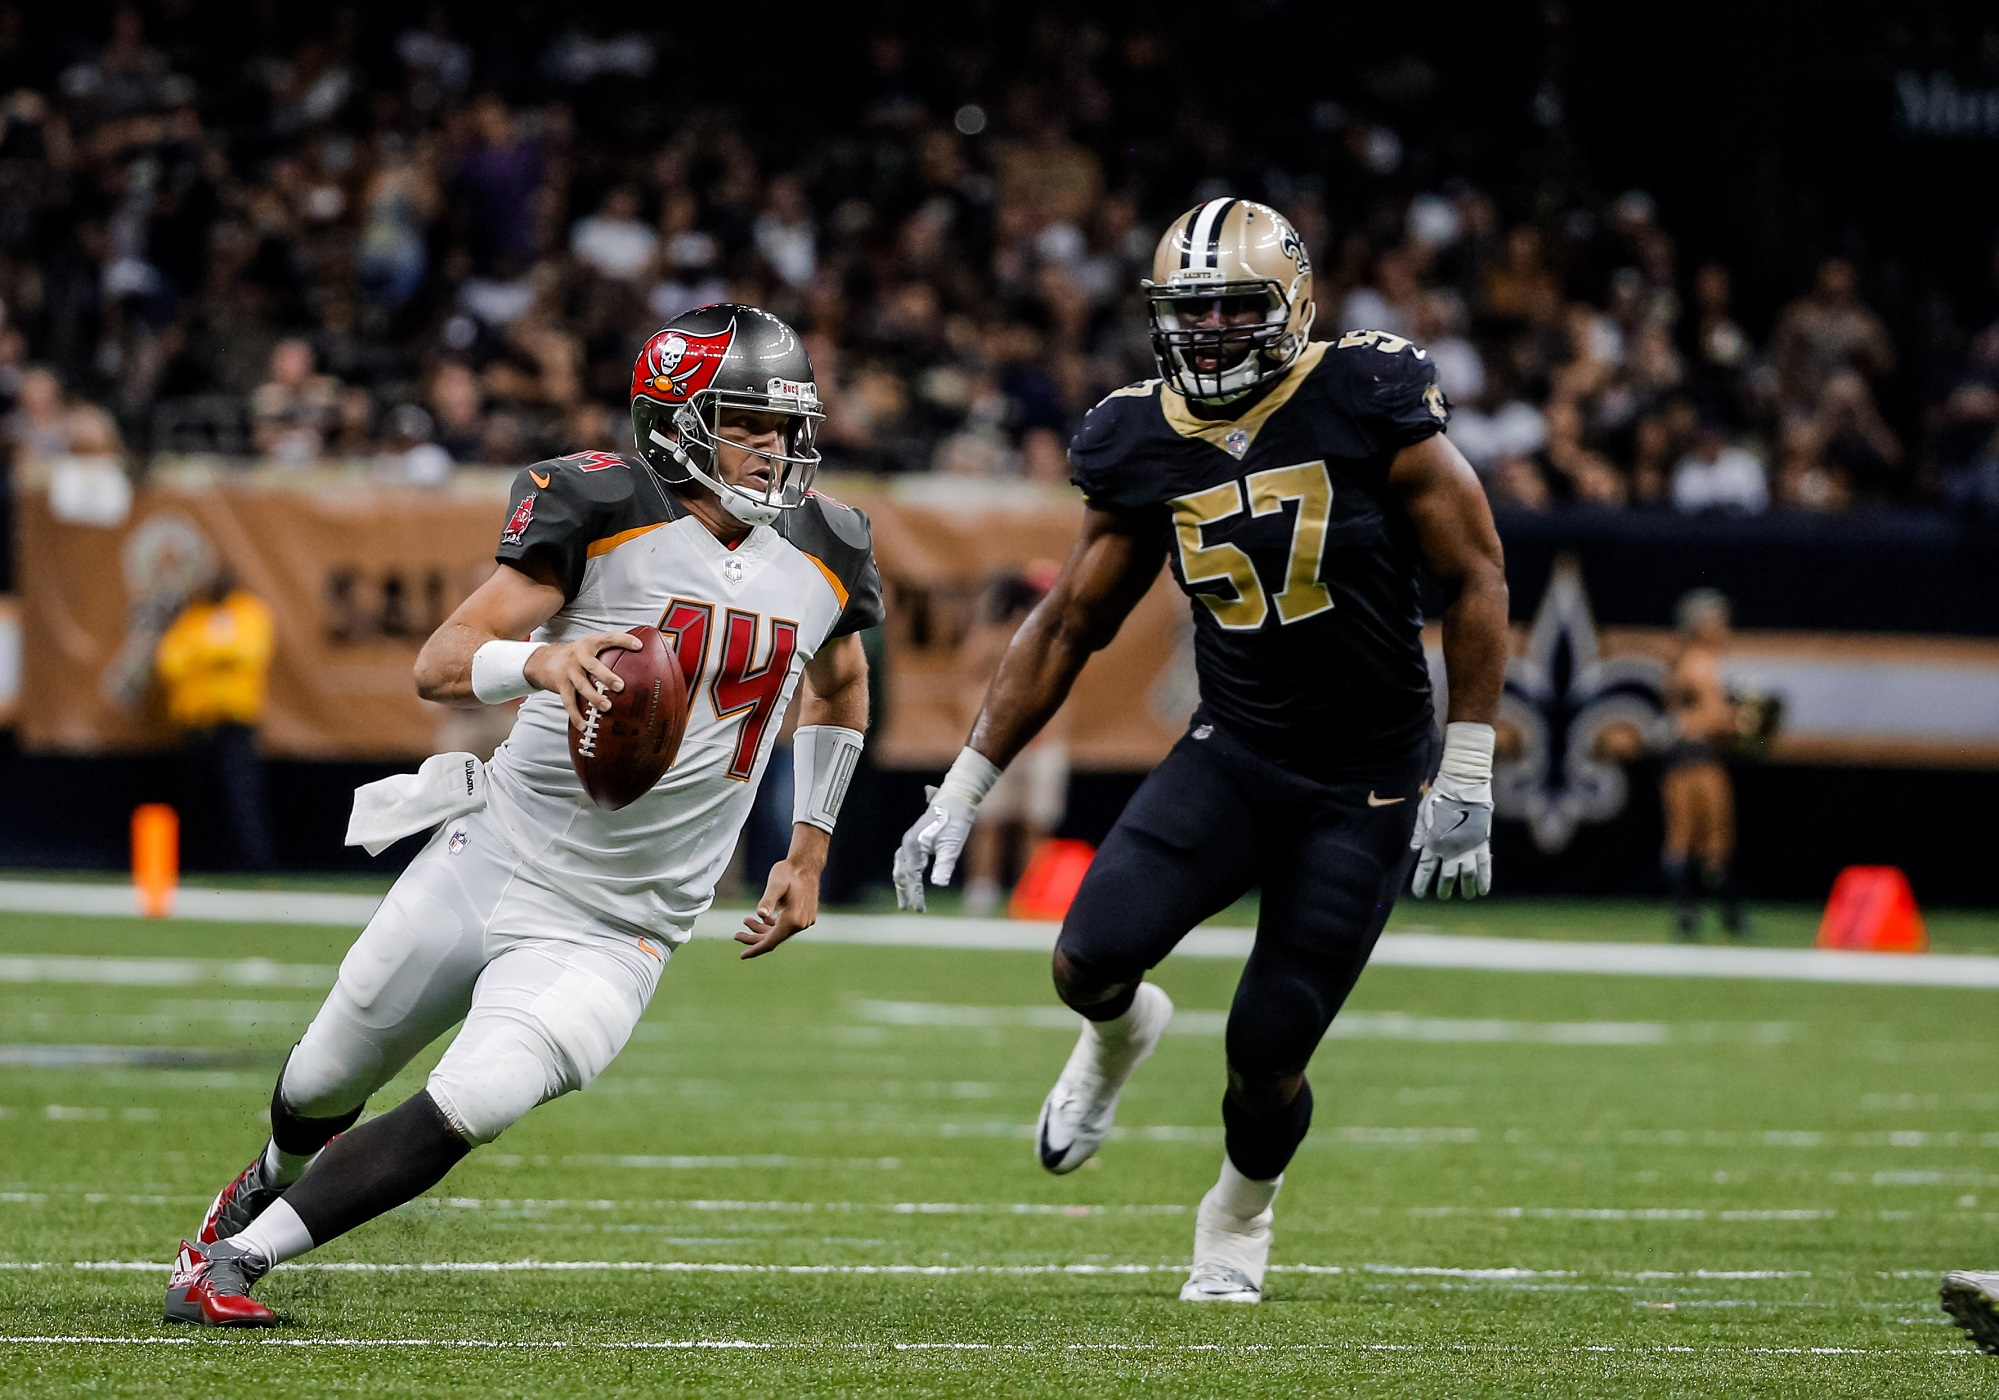 Saints' options to replace Alex Okafor include Trey Hendrickson, Hau'oli Kikaha